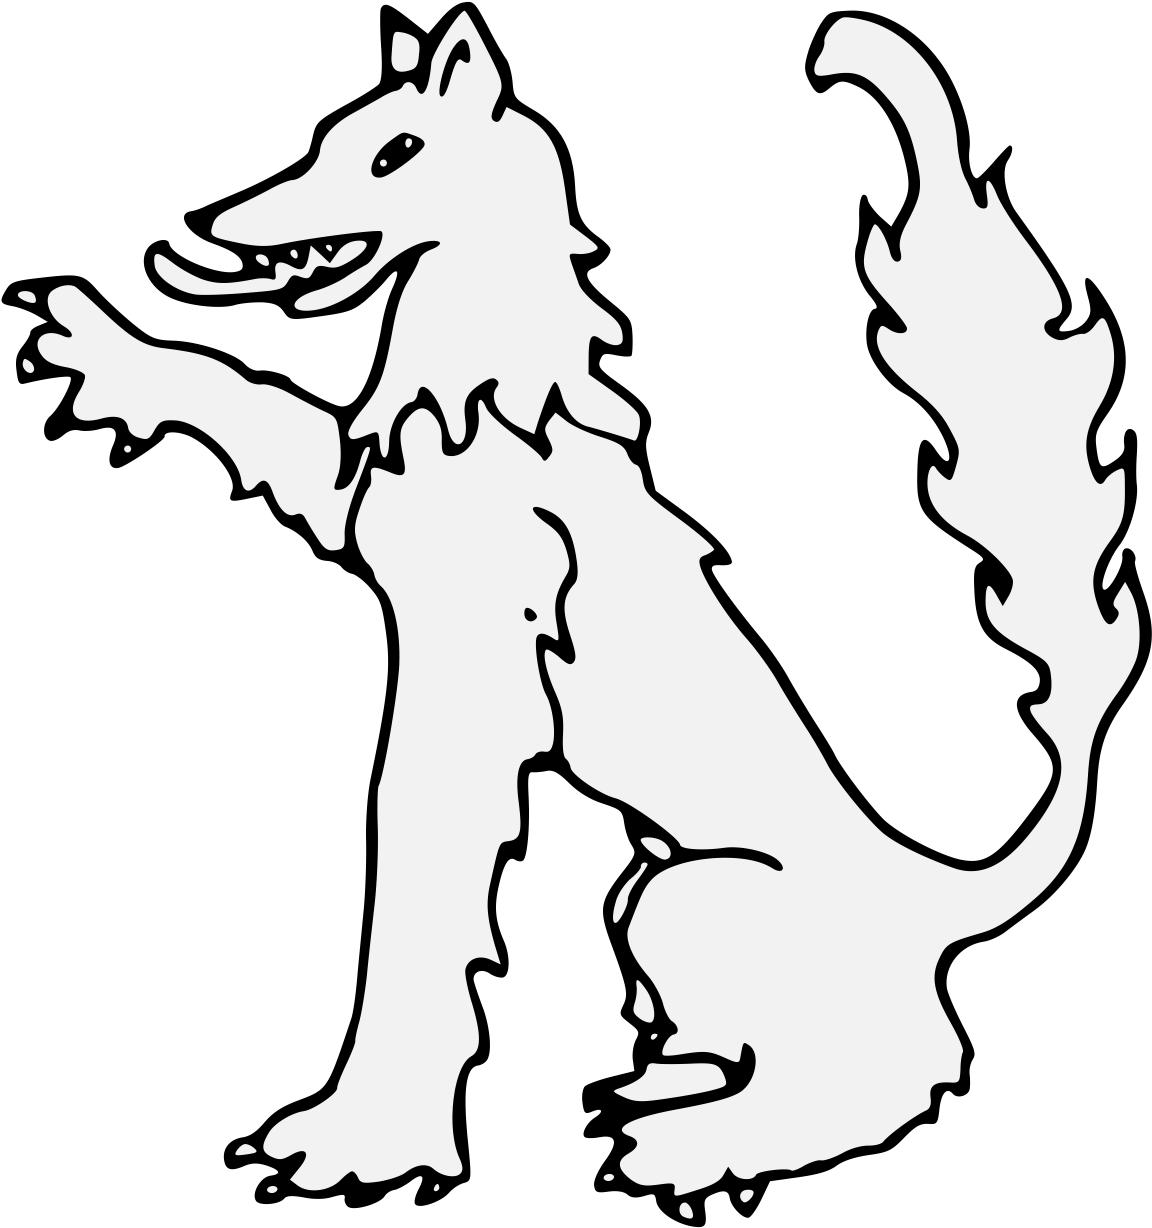 1152x1228 Wolf Sejant Dexter Paw Raised Traceable Heraldic Art